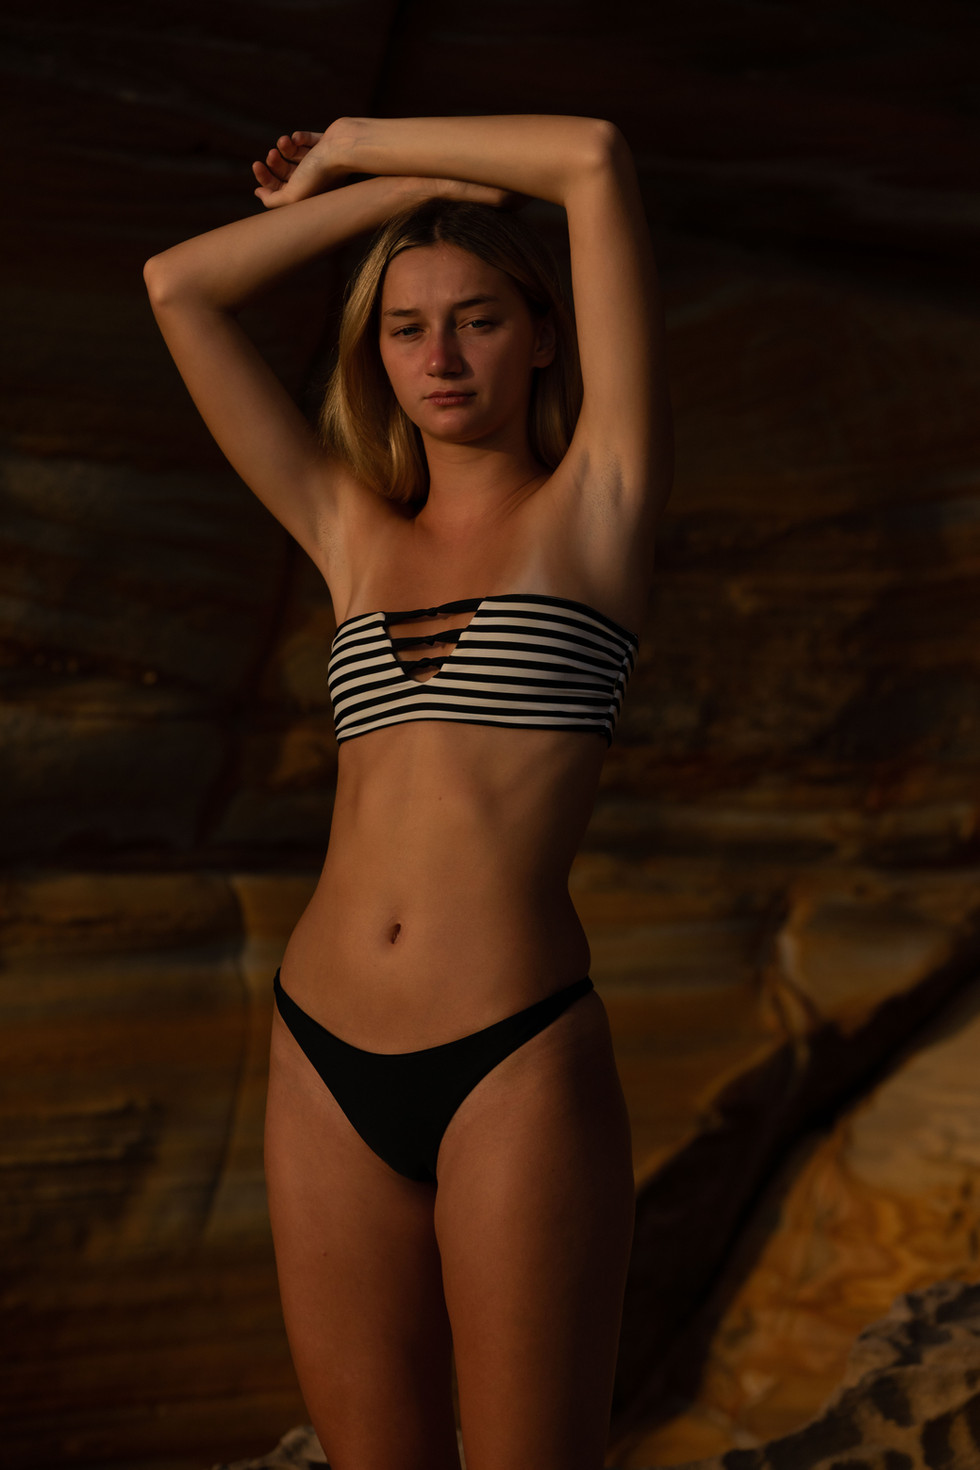 Annabelle_by_CoogeePhotography-IMGL9258_